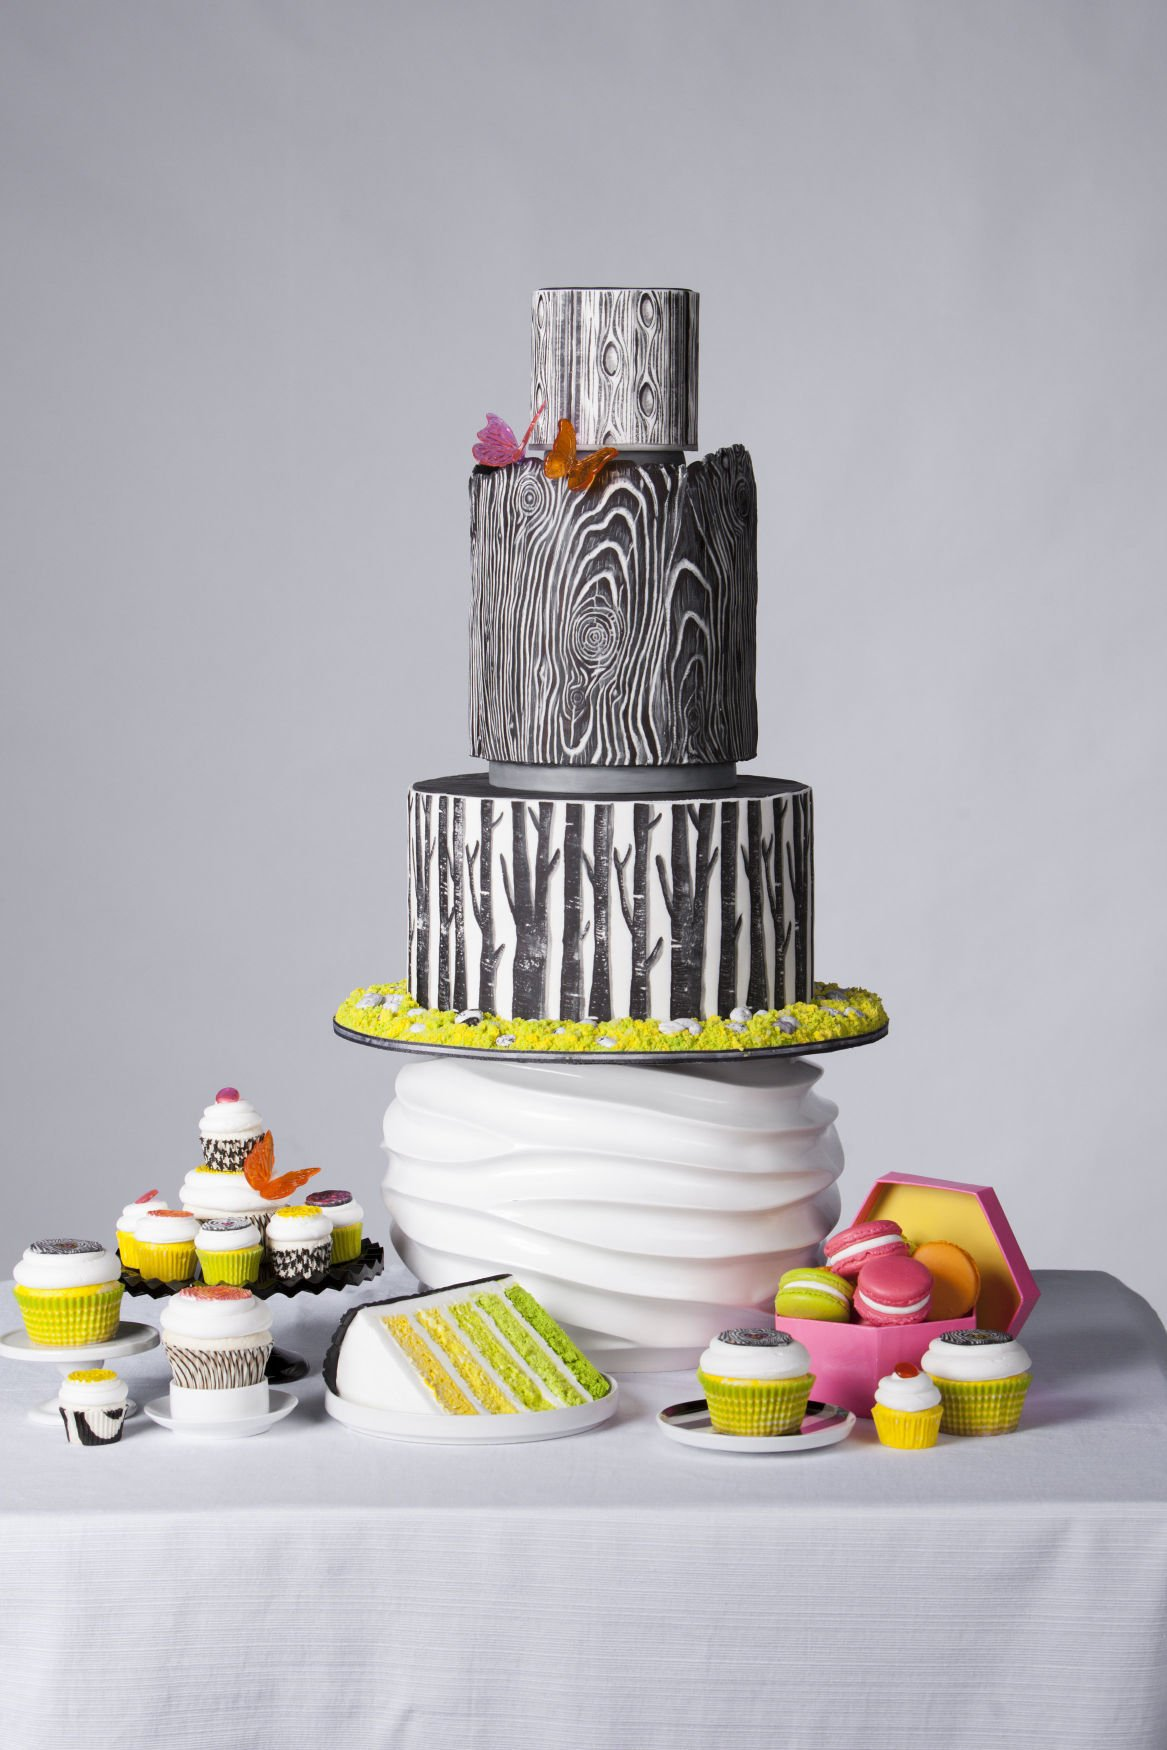 Local bakeries make wedding cakes into works of art | Food ...